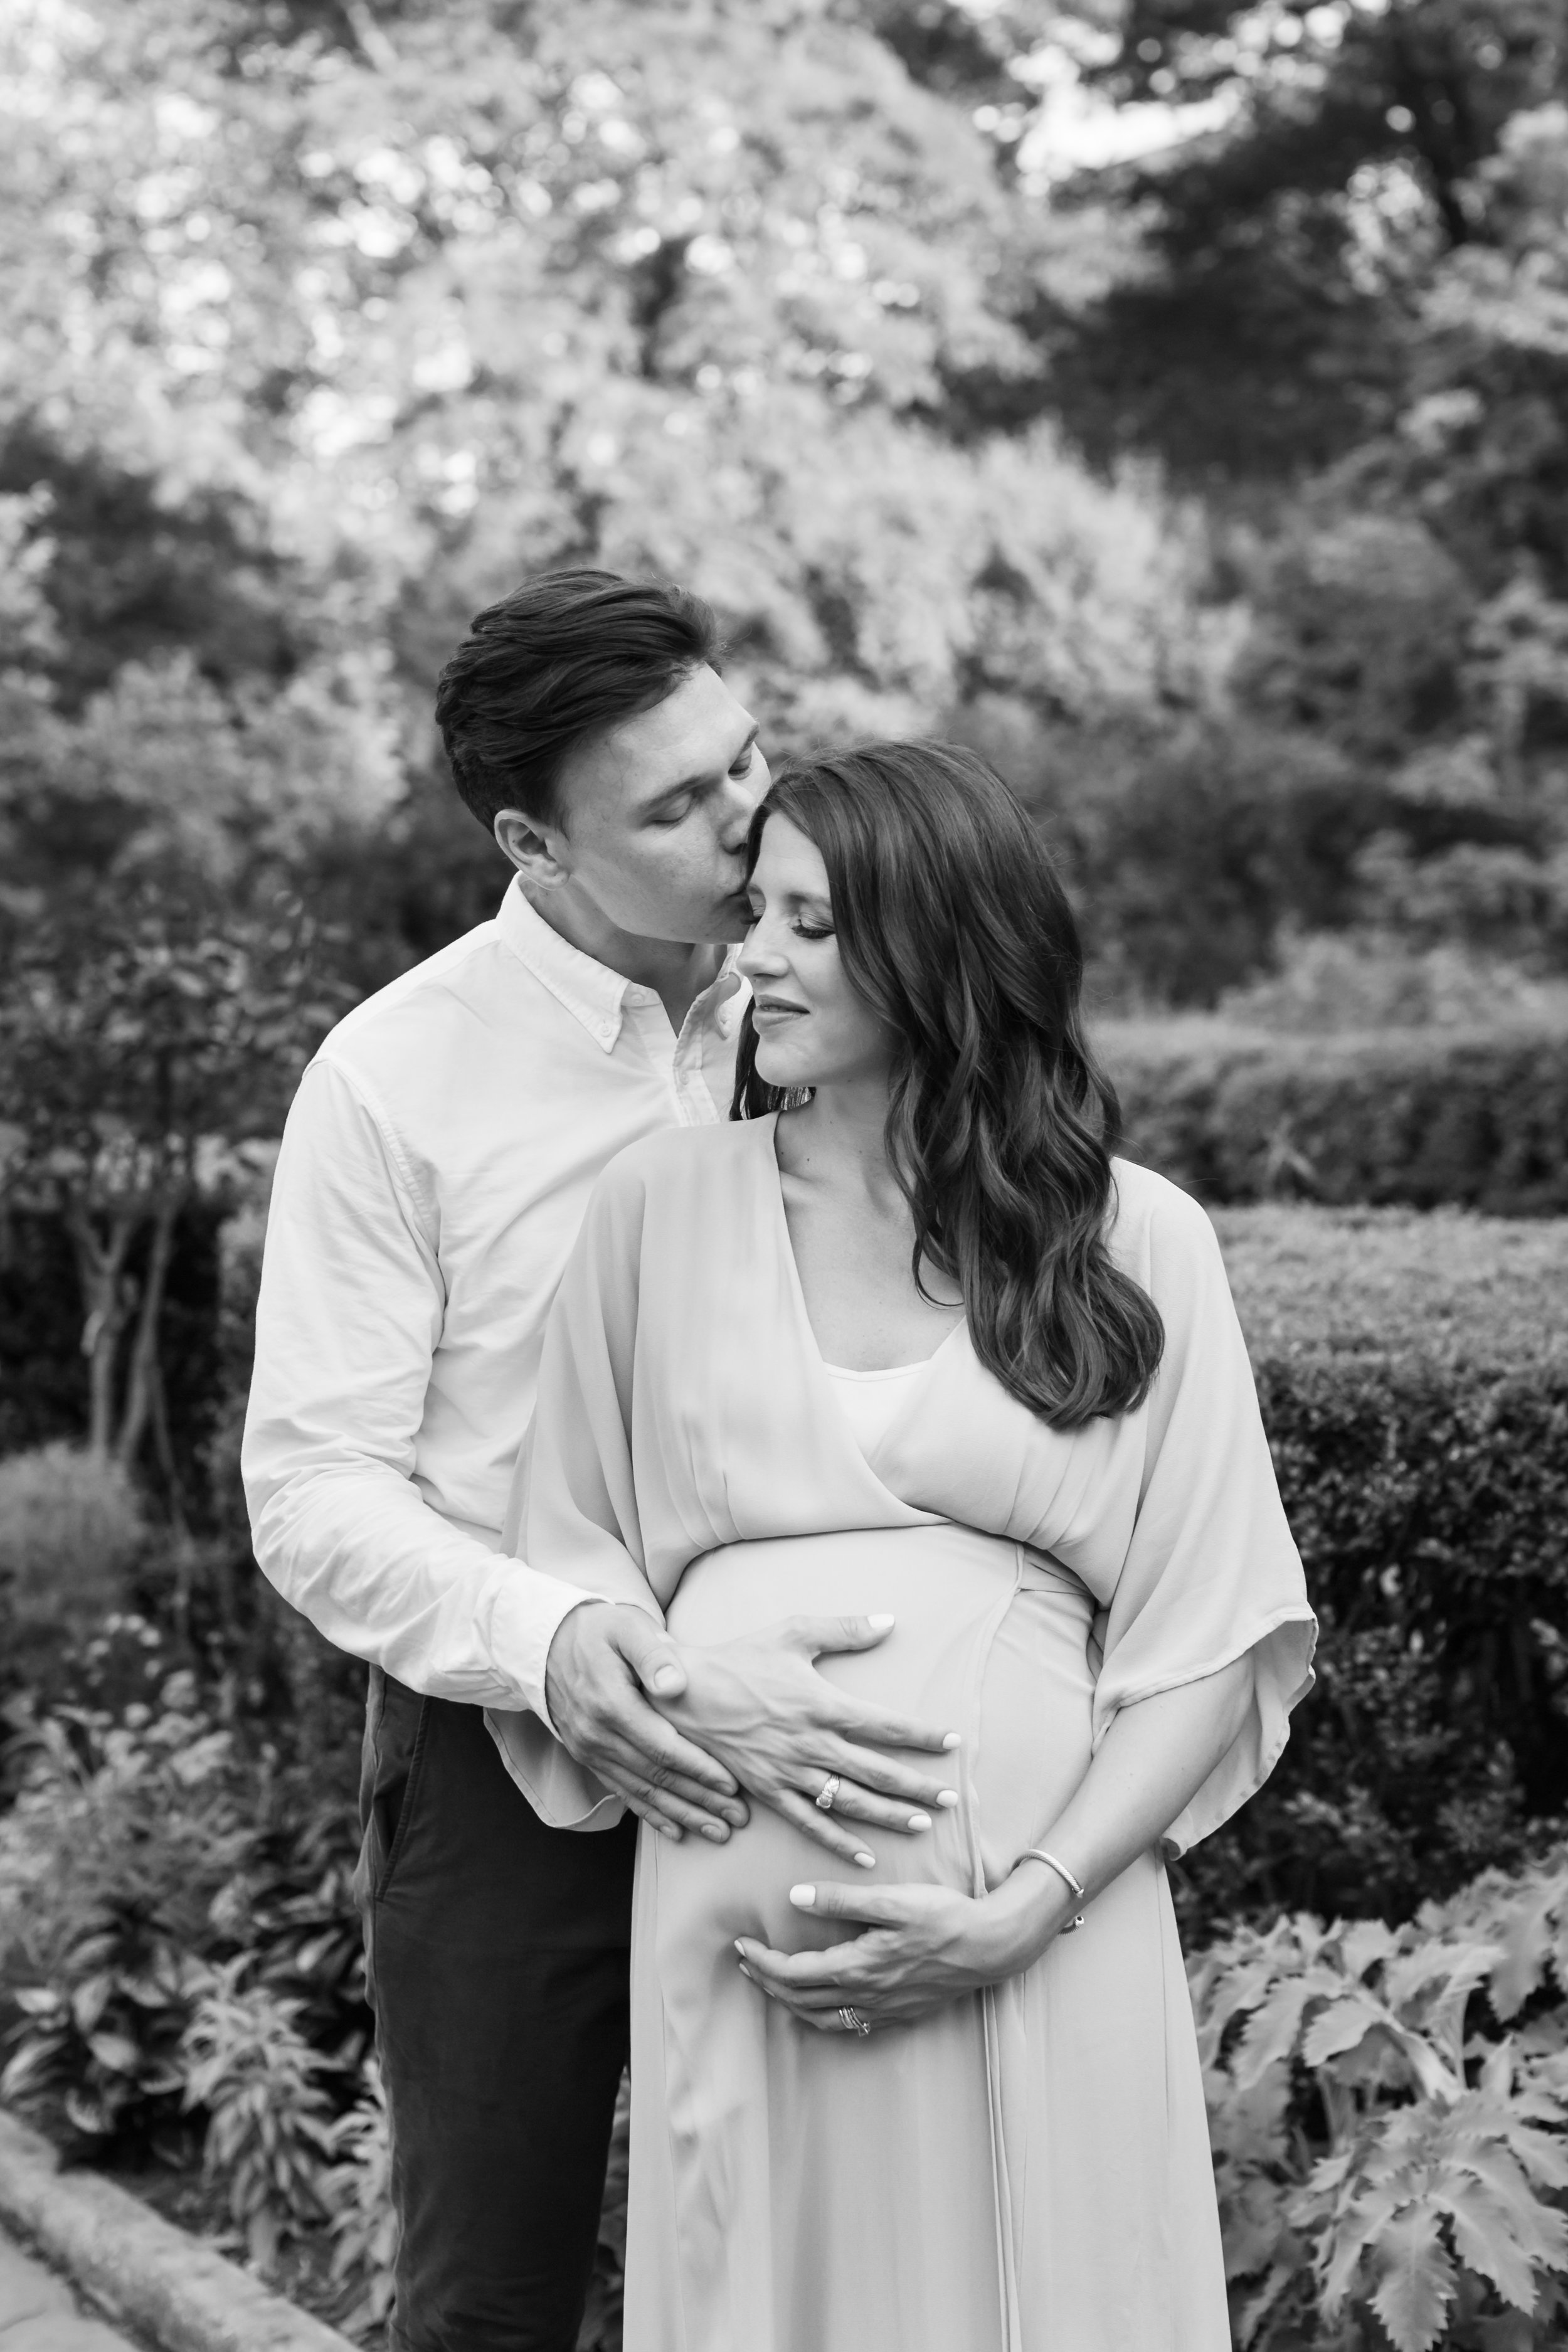 NYC Black and White Maternity photography - Helene Stype